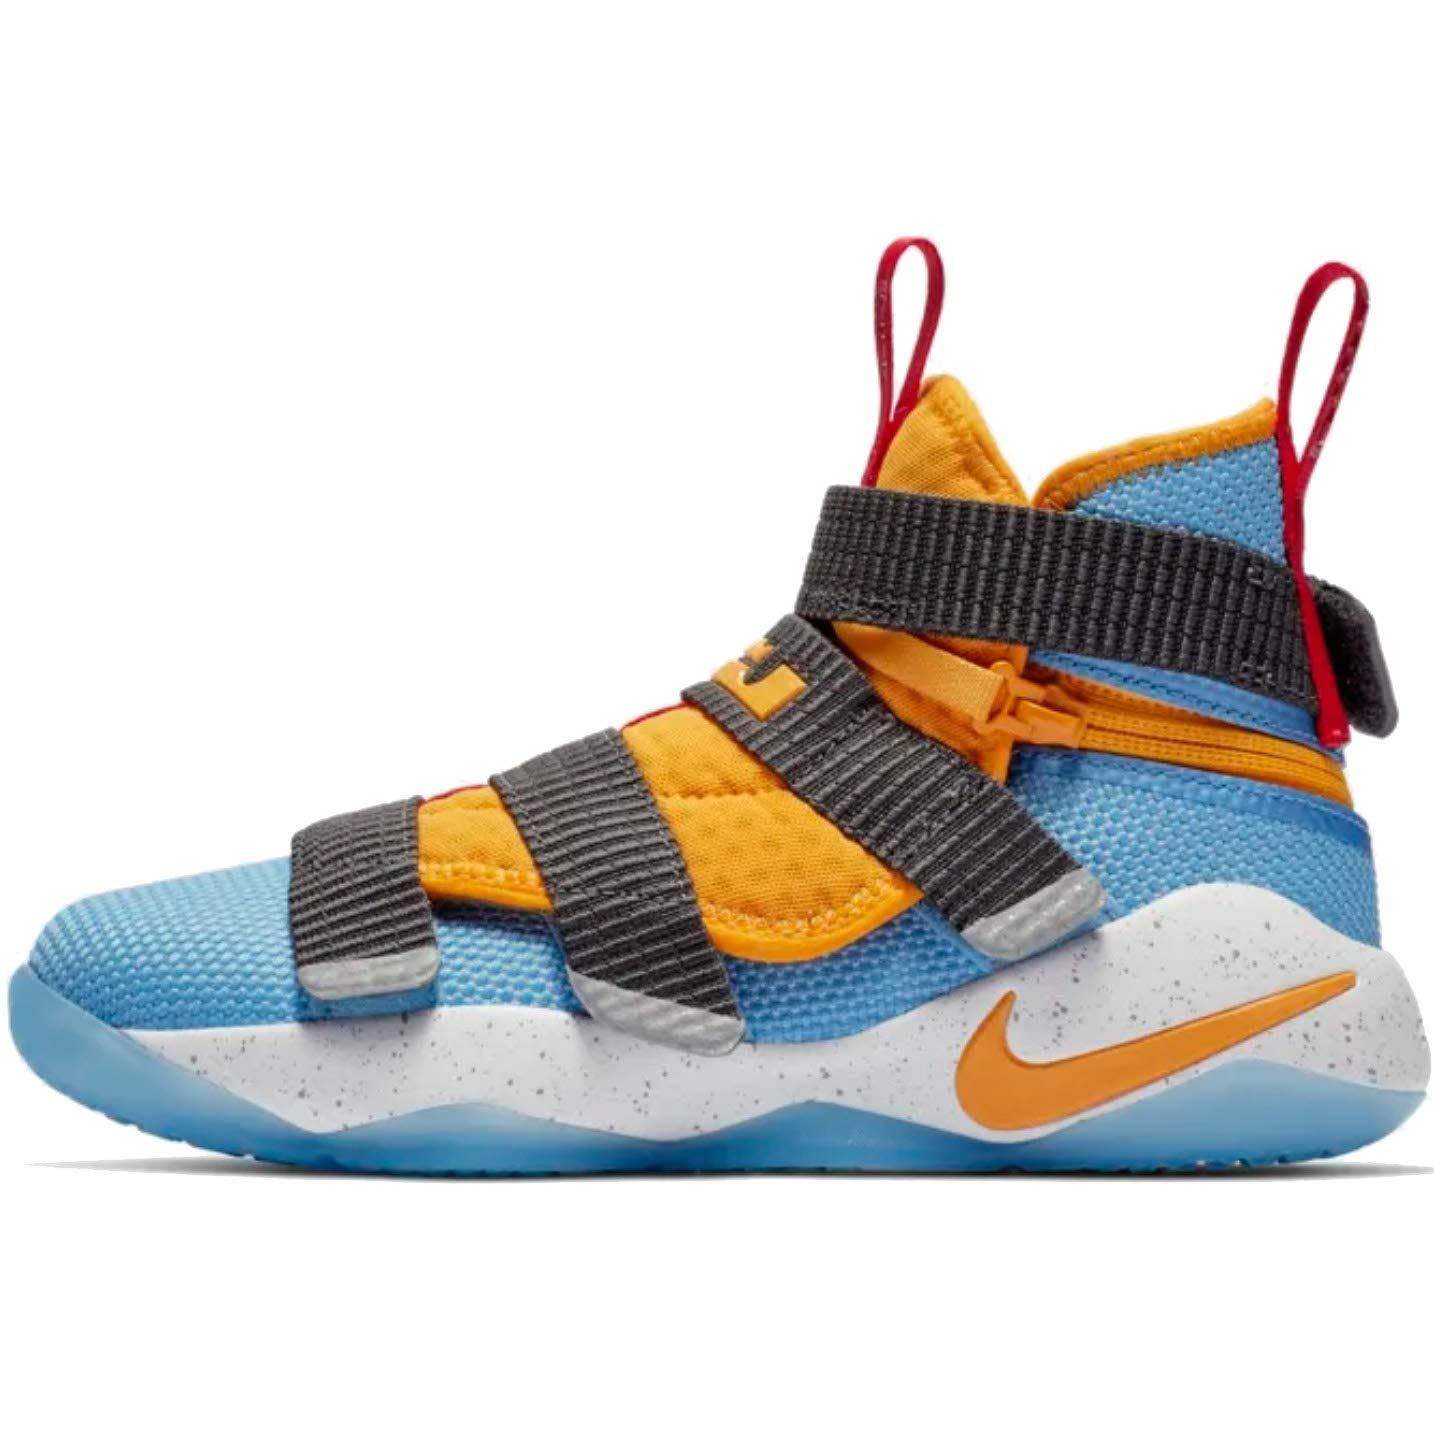 new product 3286d b0b76 Amazon.com | Nike Boys Lebron Soldier Xi Flyease (gs) Shoe ...